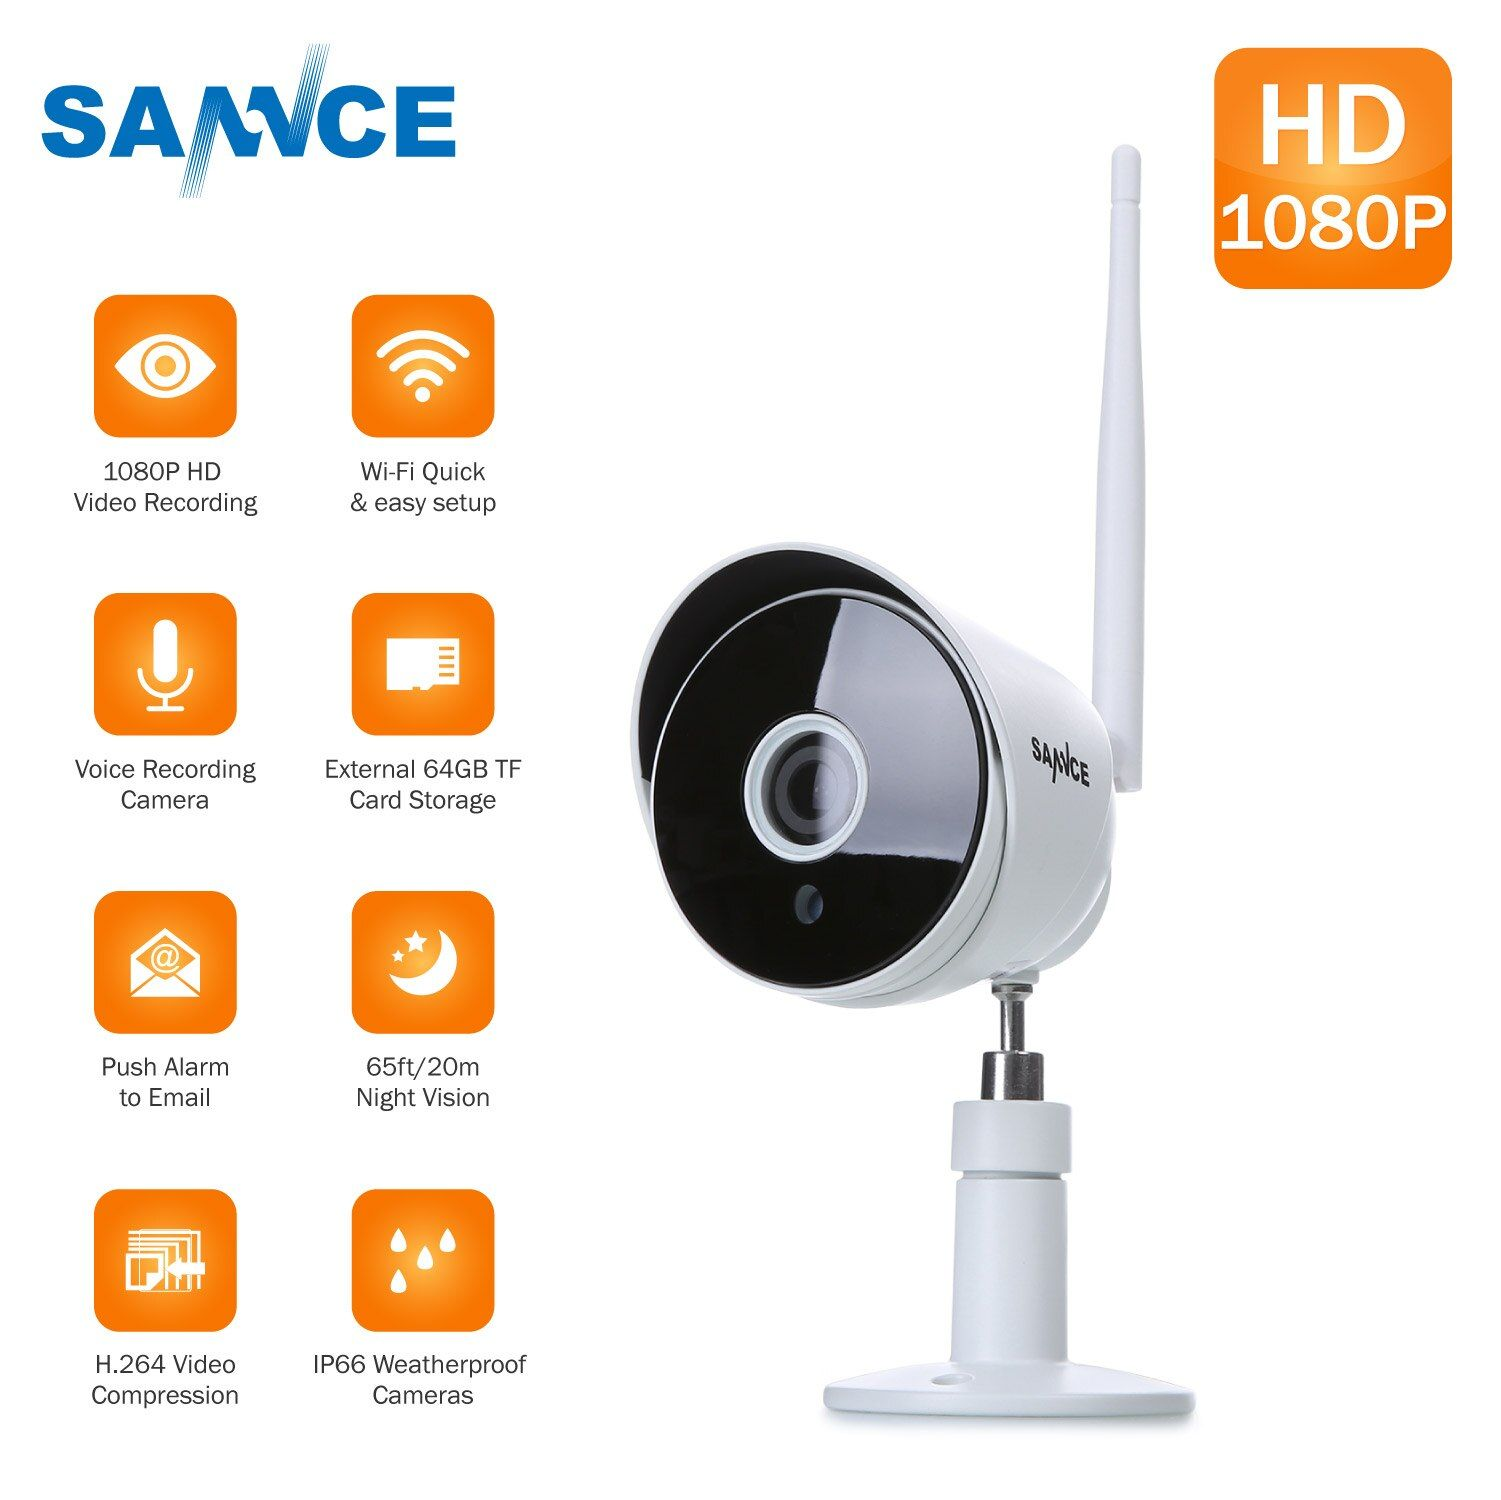 SANNCE HD 1080P Wireless IP Camera Wifi Surveillance Camara Outdoor Waterproof Night Vision Onvif P2P Home Security CCTV Camera